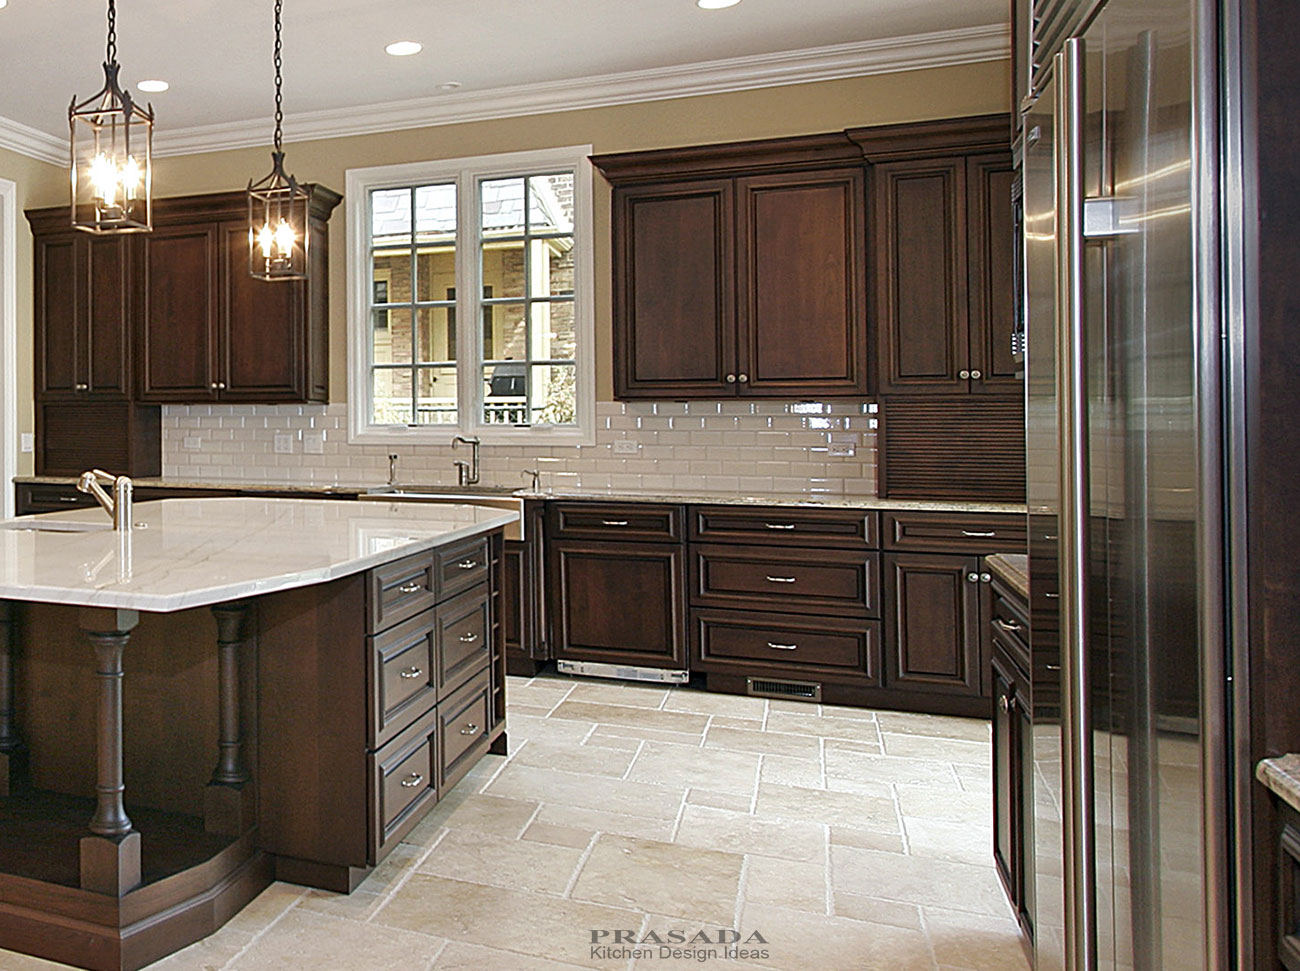 Used Furniture In Toronto Used Furniture In Mississauga  : Prasada Dark cherry cabinets design ideas from favefaves.com size 1300 x 971 jpeg 274kB